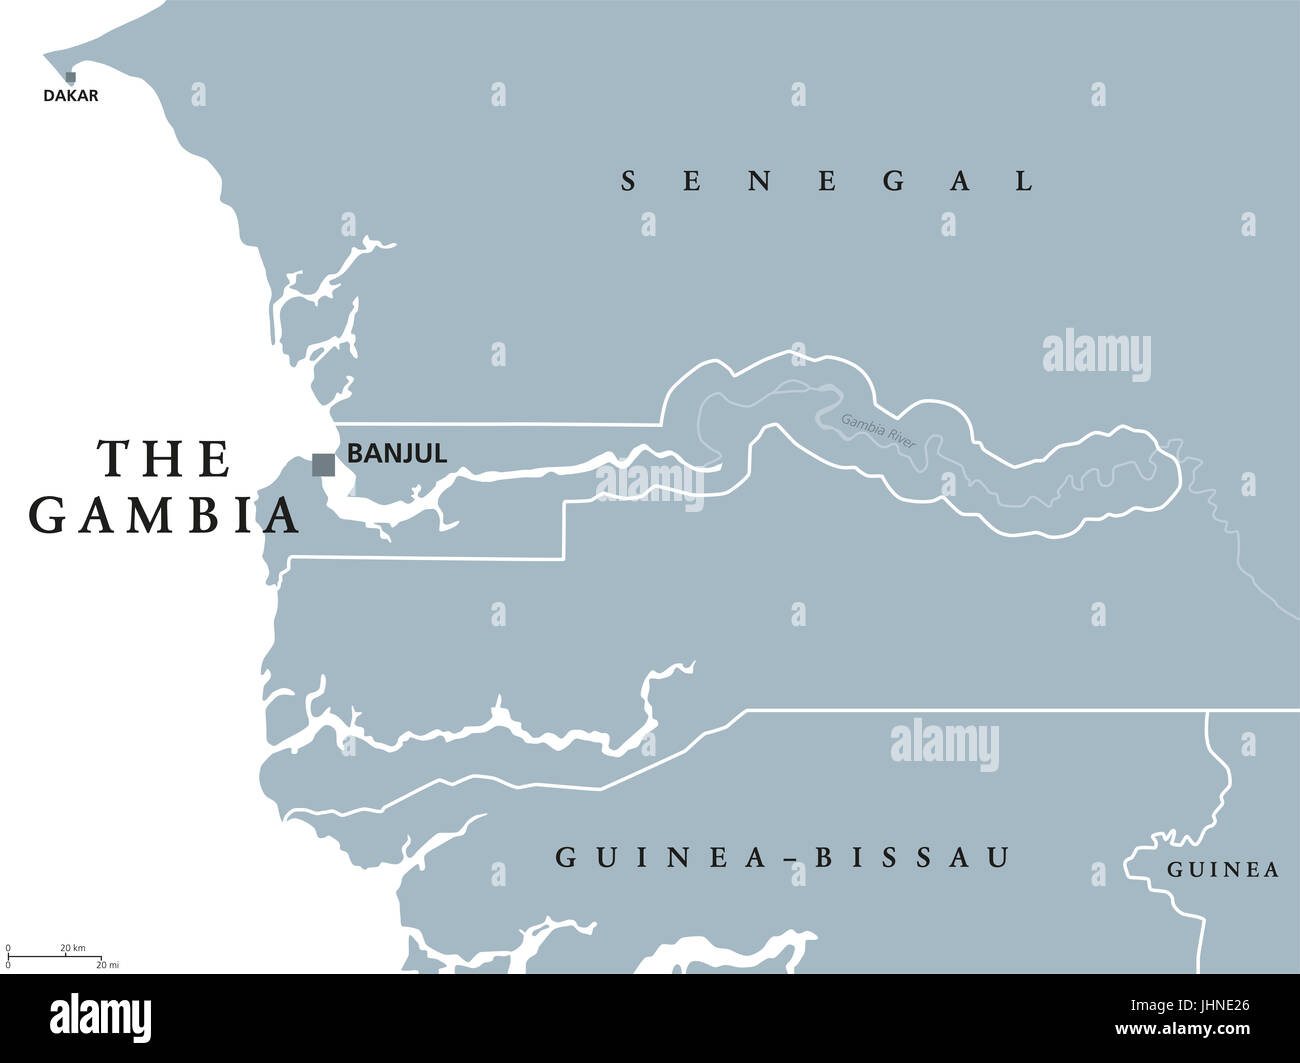 The Gambia political map with capital Banjul Republic and country